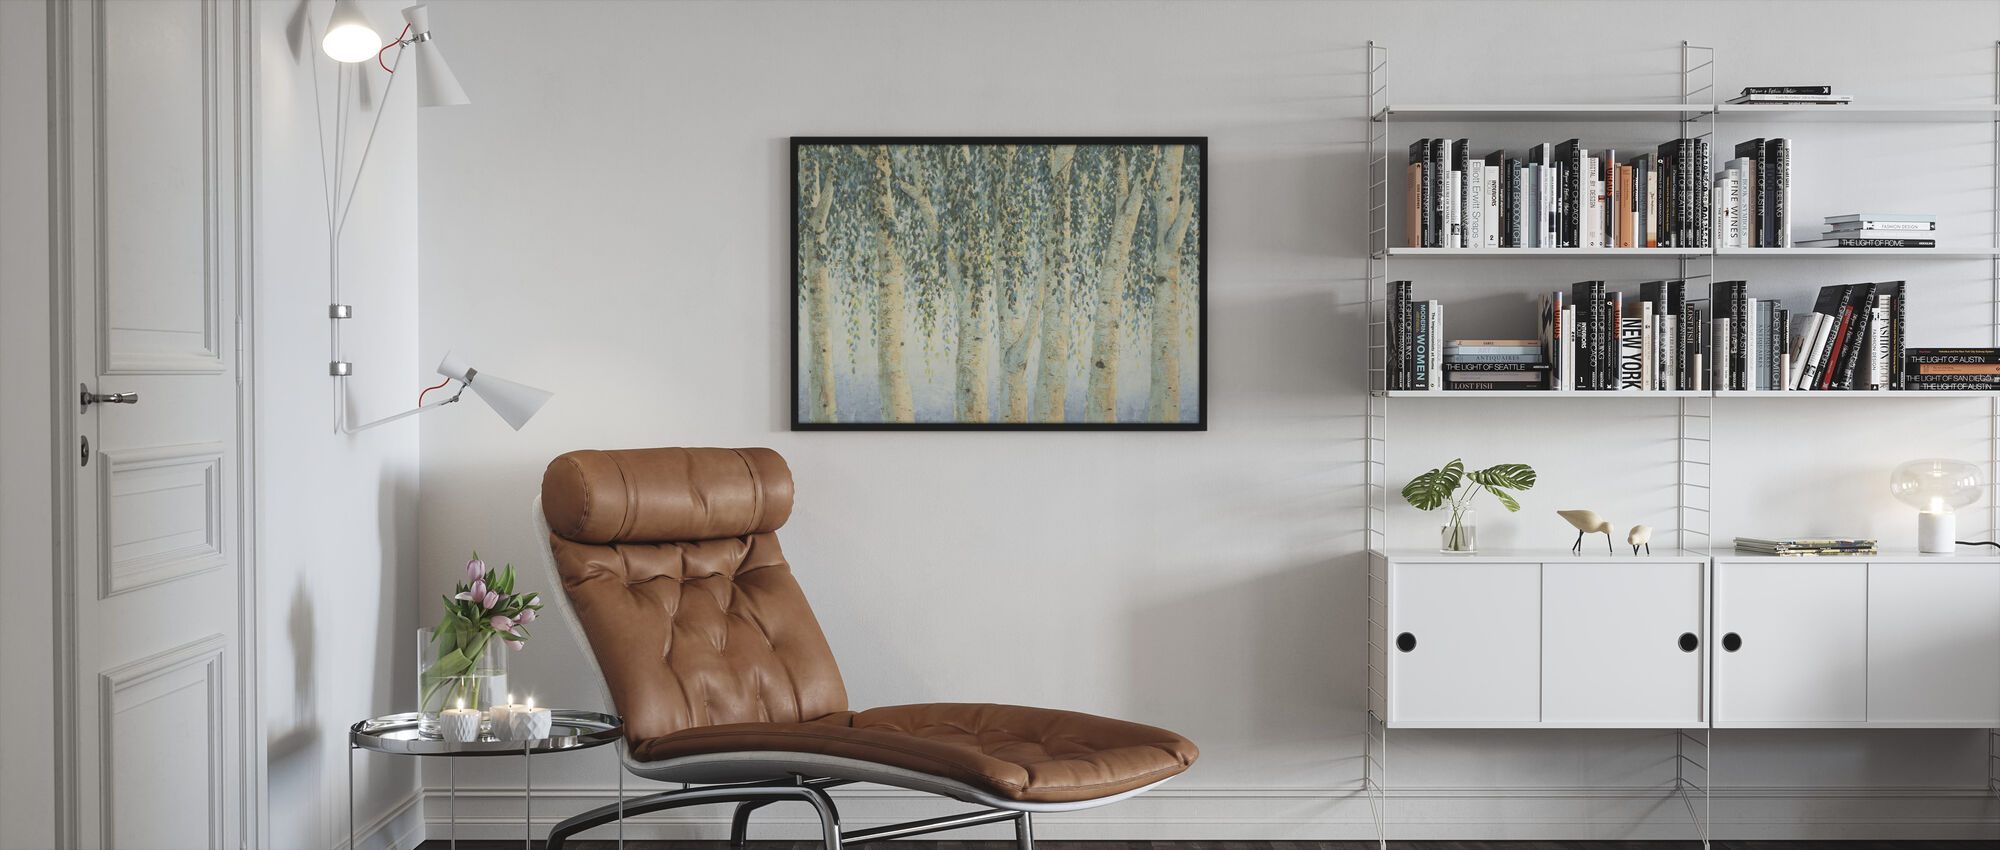 Sweeping Branches - Framed print - Living Room